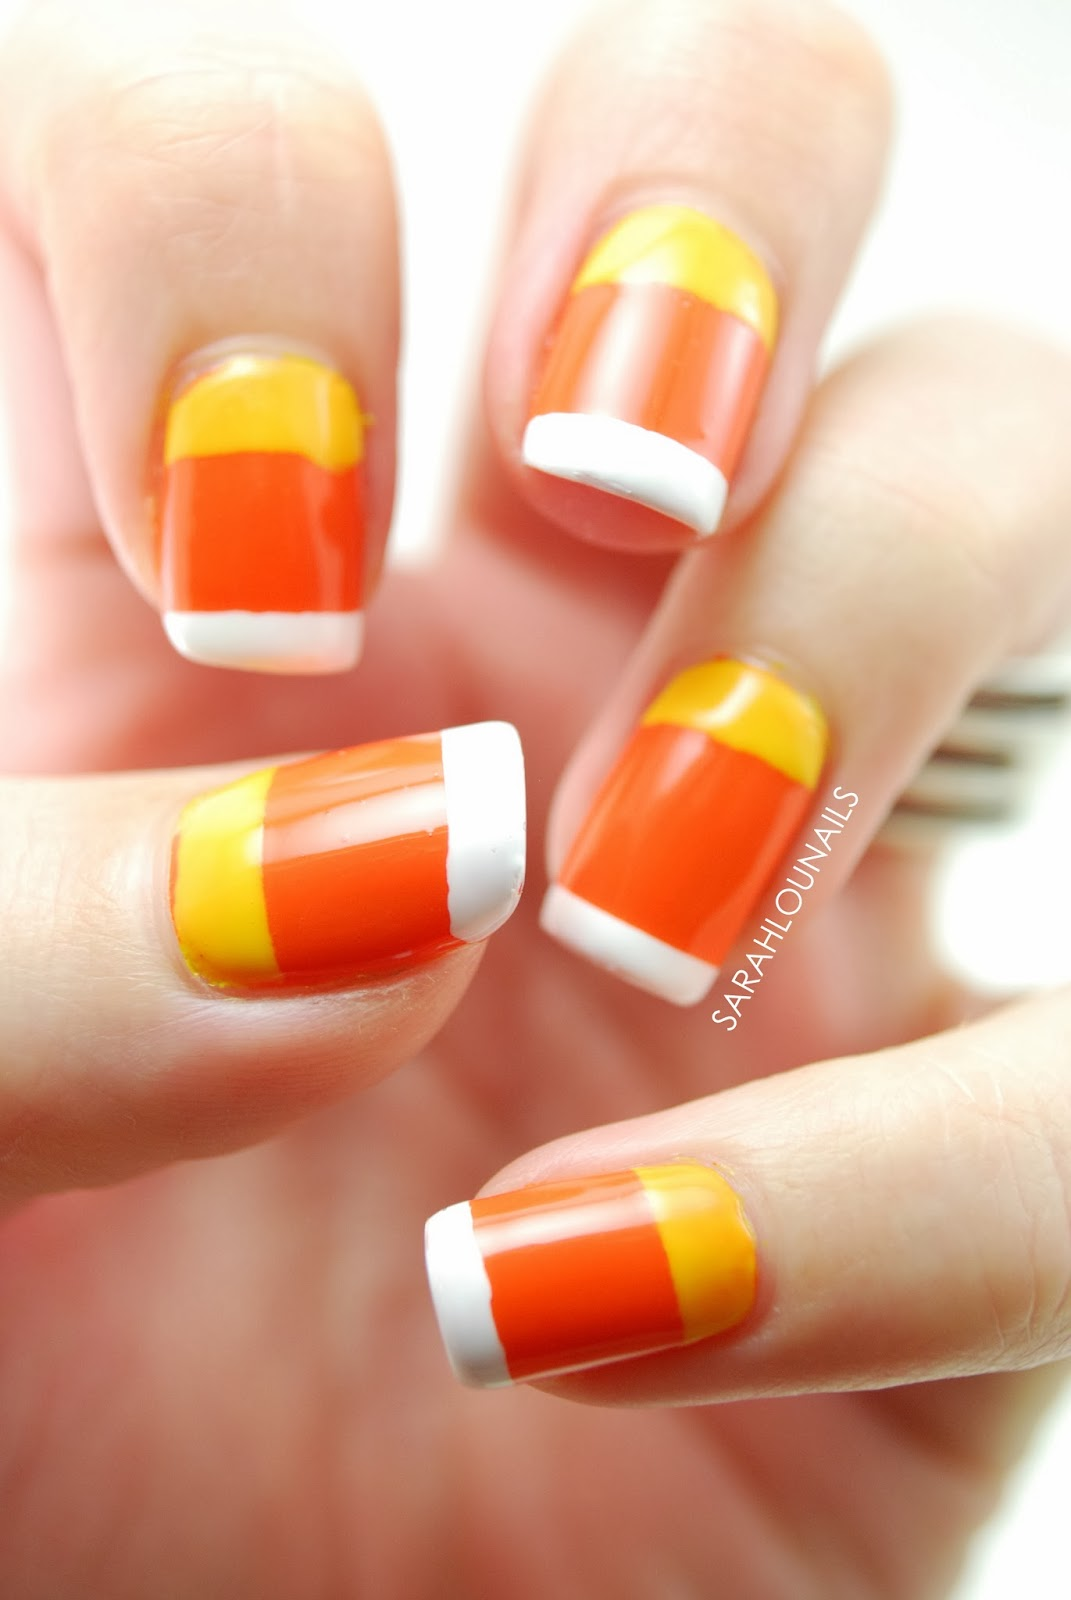 Sarah lou nails october 2013 candy corn nails prinsesfo Image collections